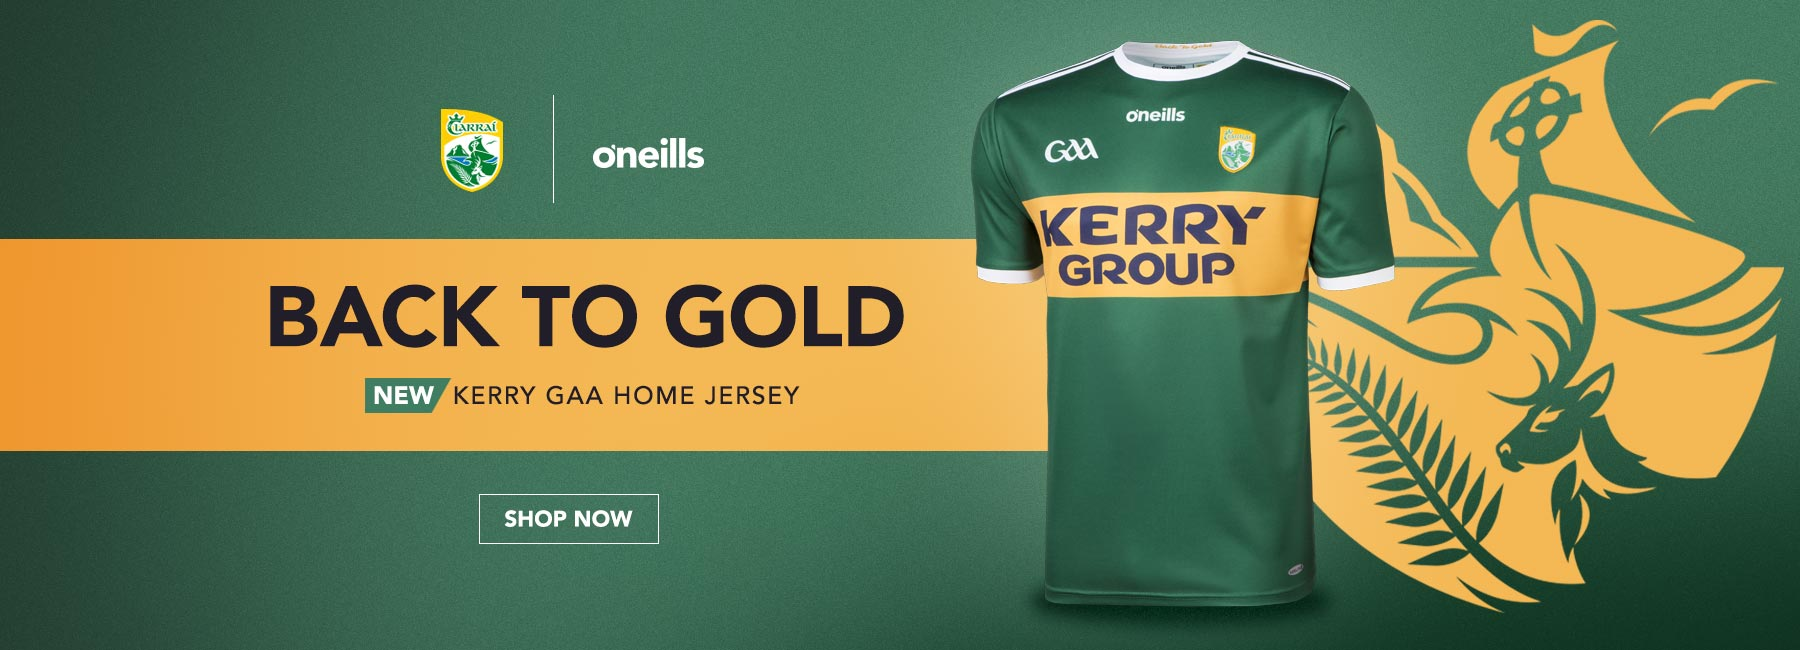 Back to Gold, Kerry and the Gold Standard